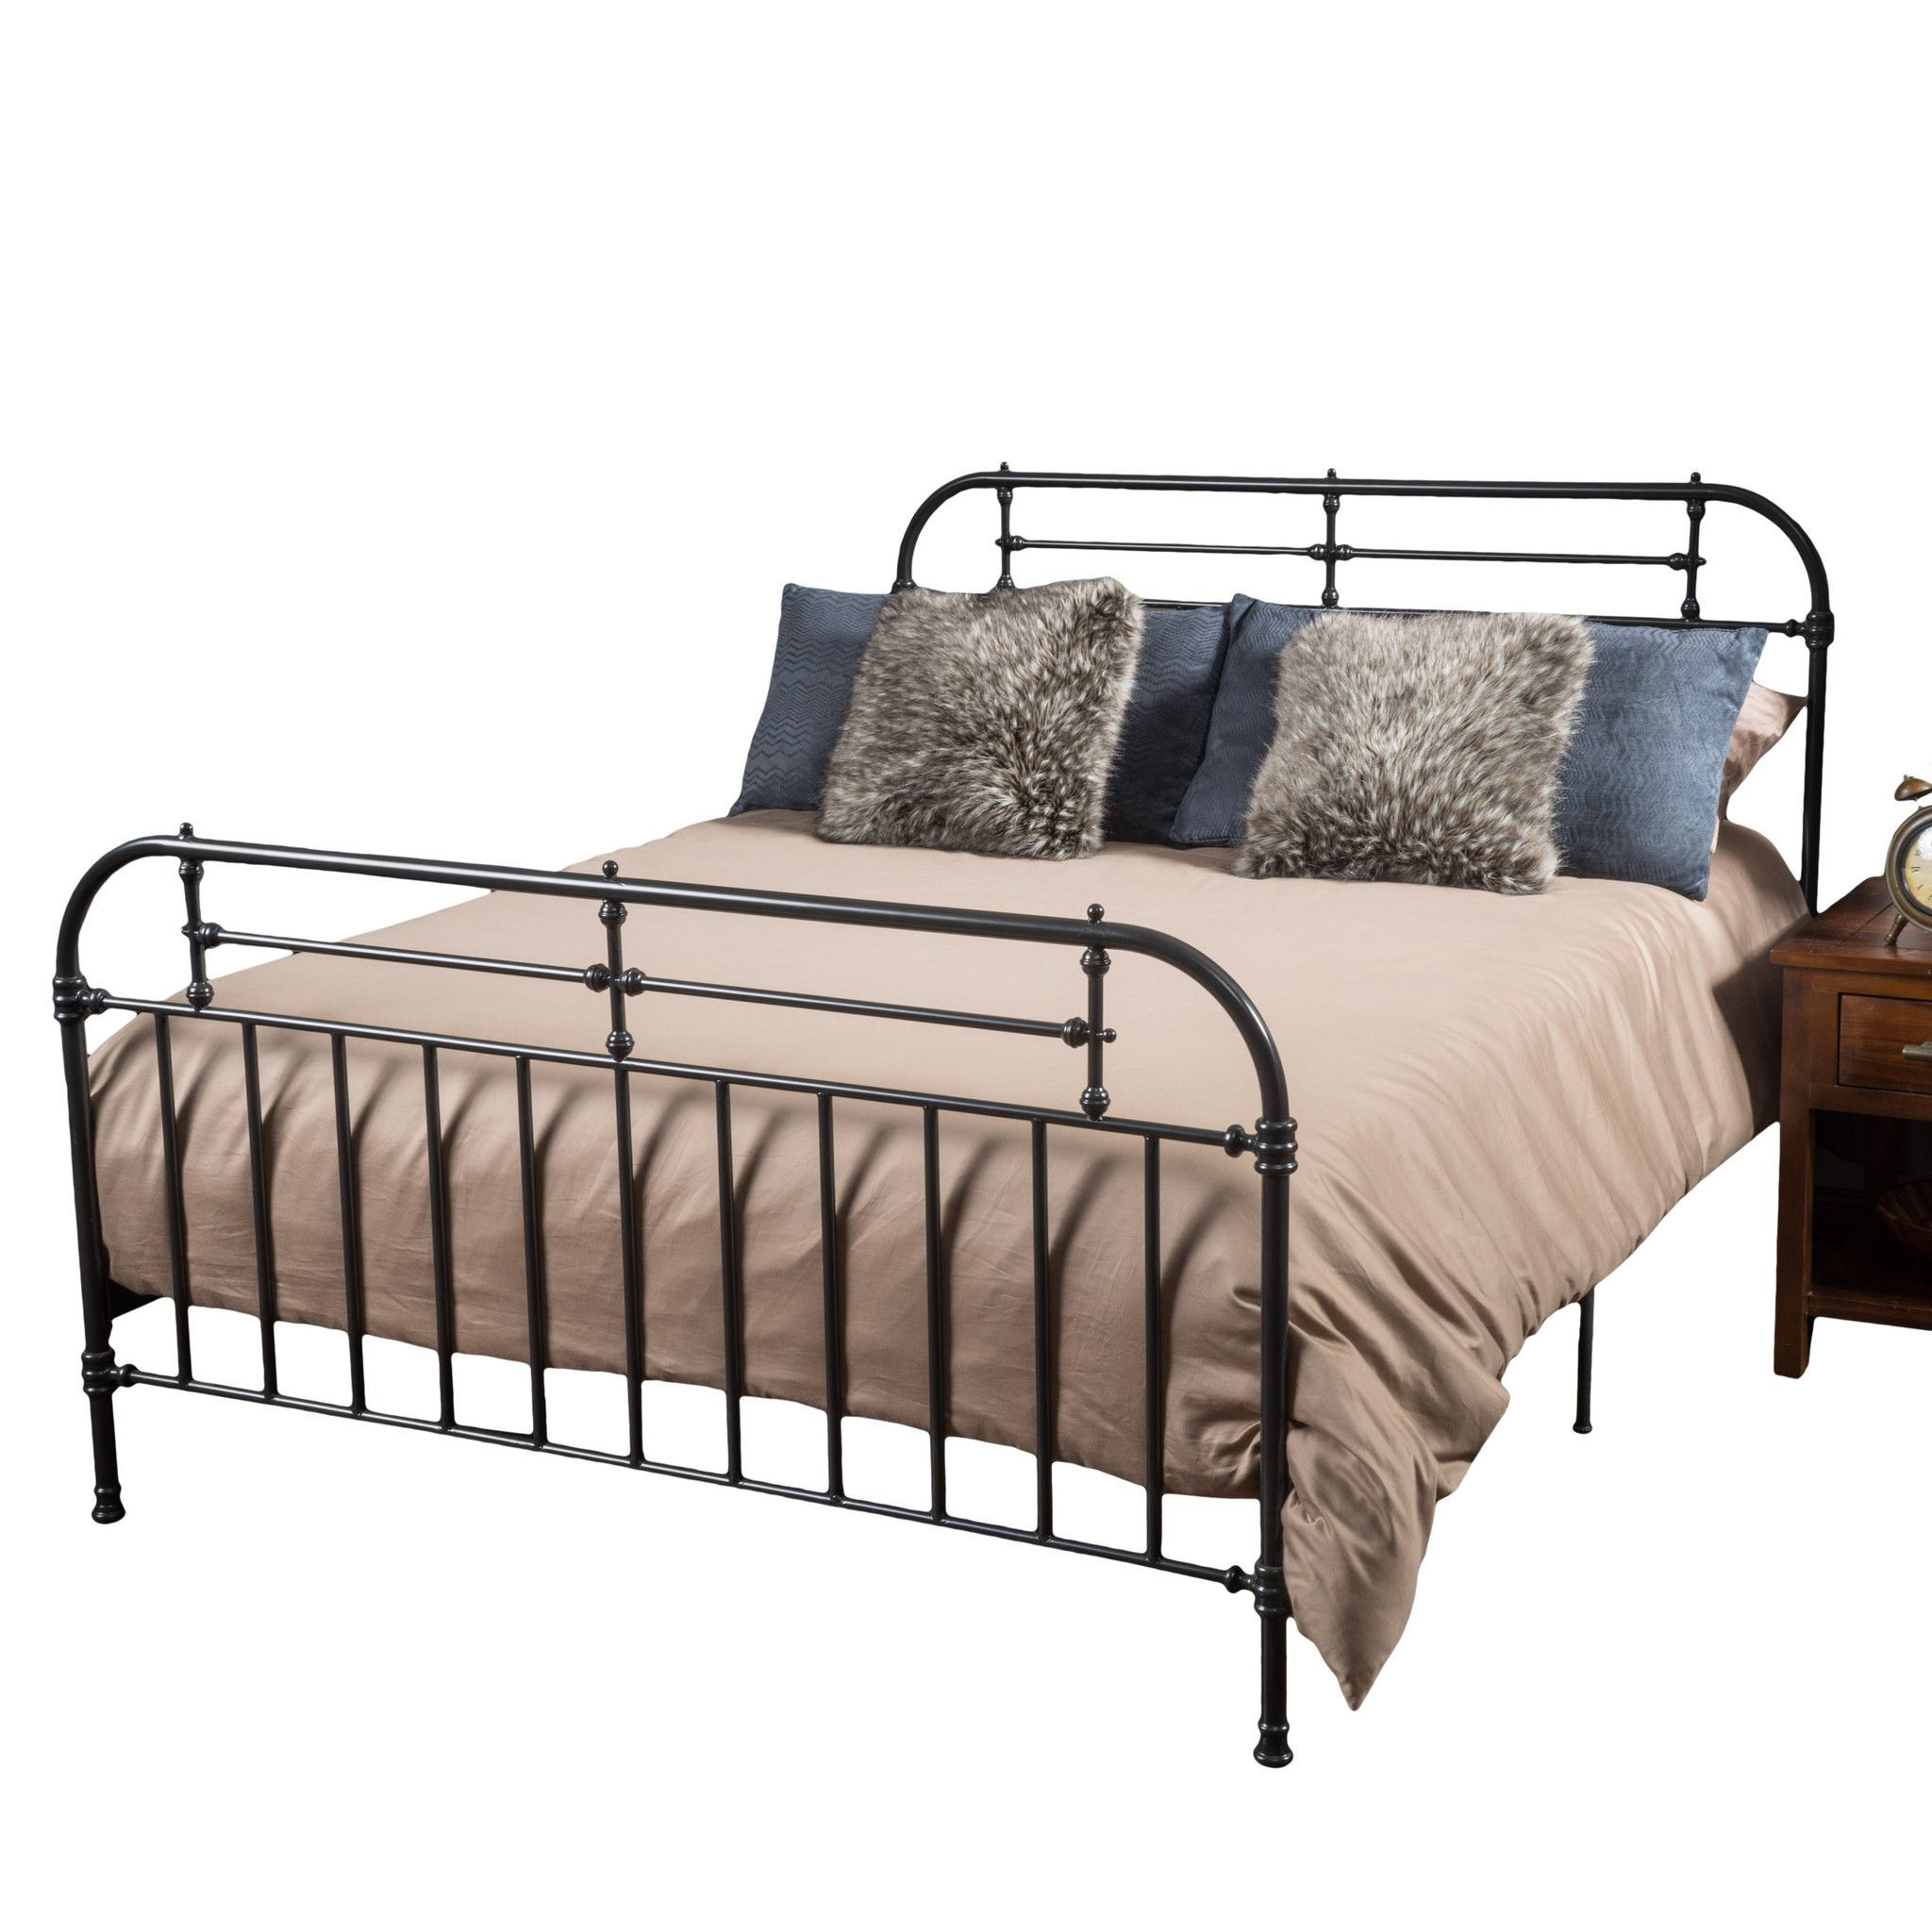 Yucatan Queen Charcoal Iron Bed Country Bedroom Furniture Queen